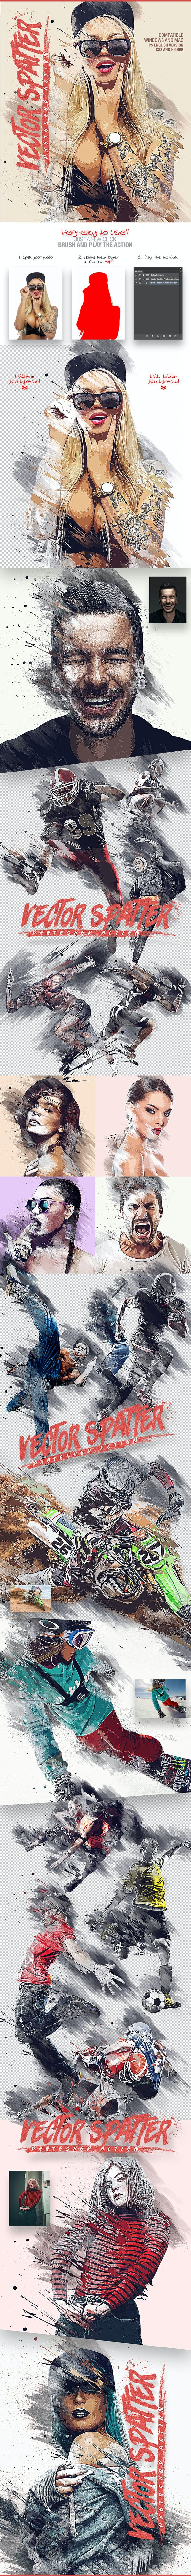 Vector Spatter Photoshop Action - Photo Effects Actions